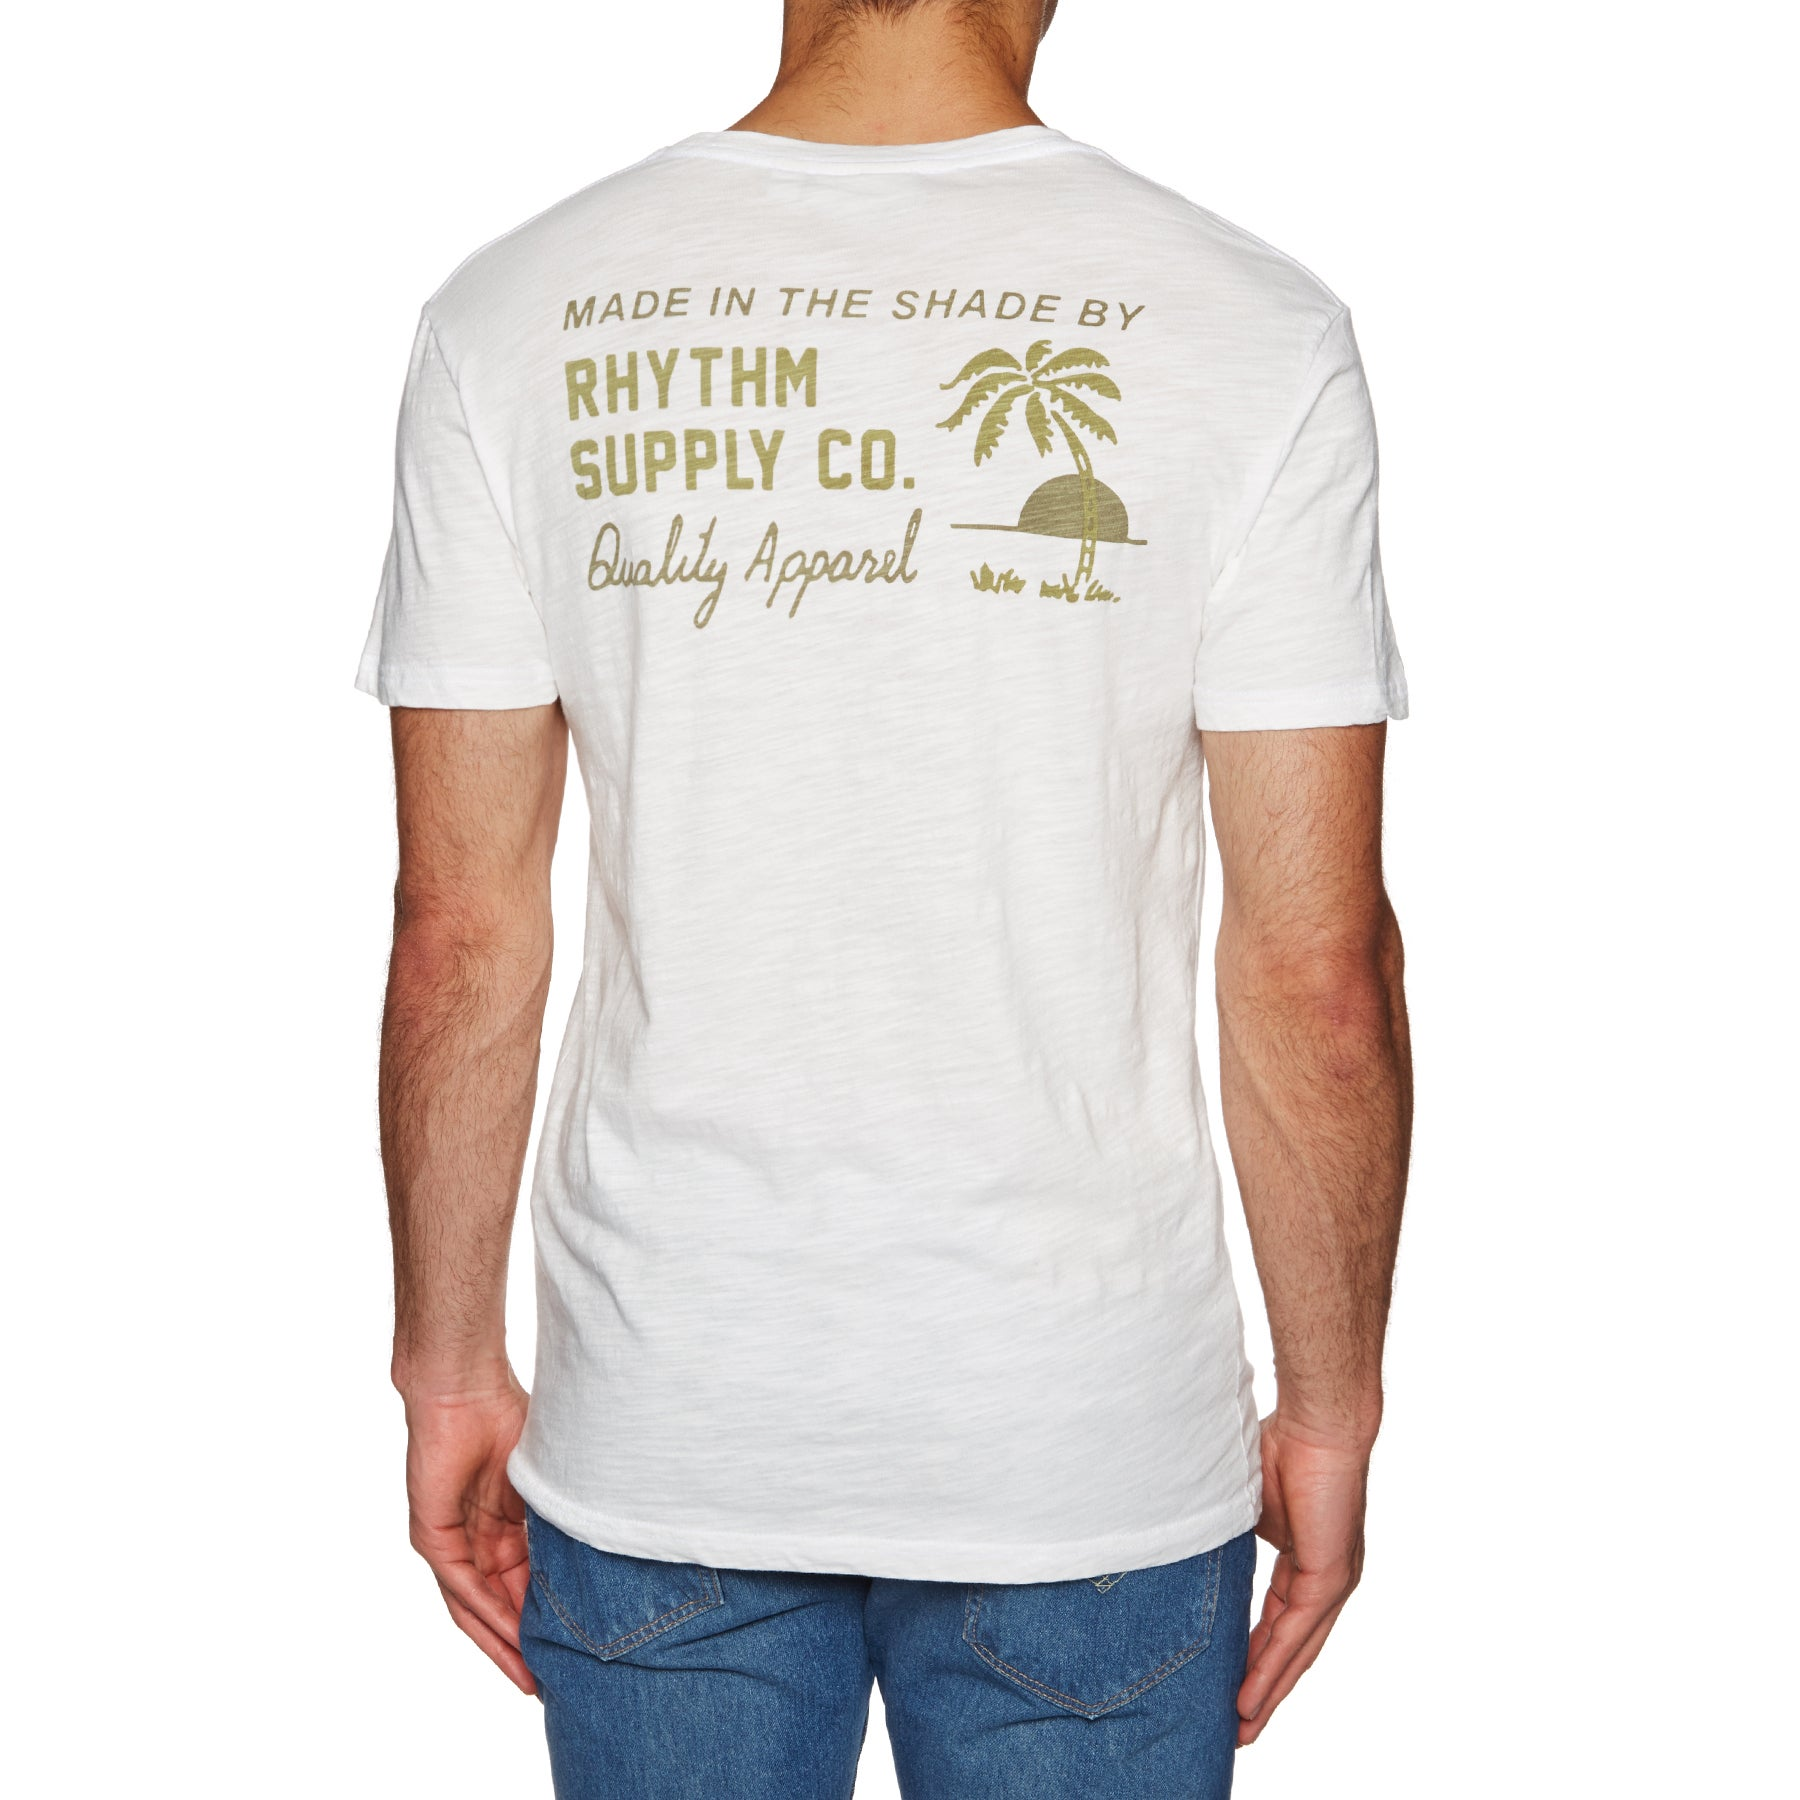 Rhythm Sunset Short Sleeve T-Shirt